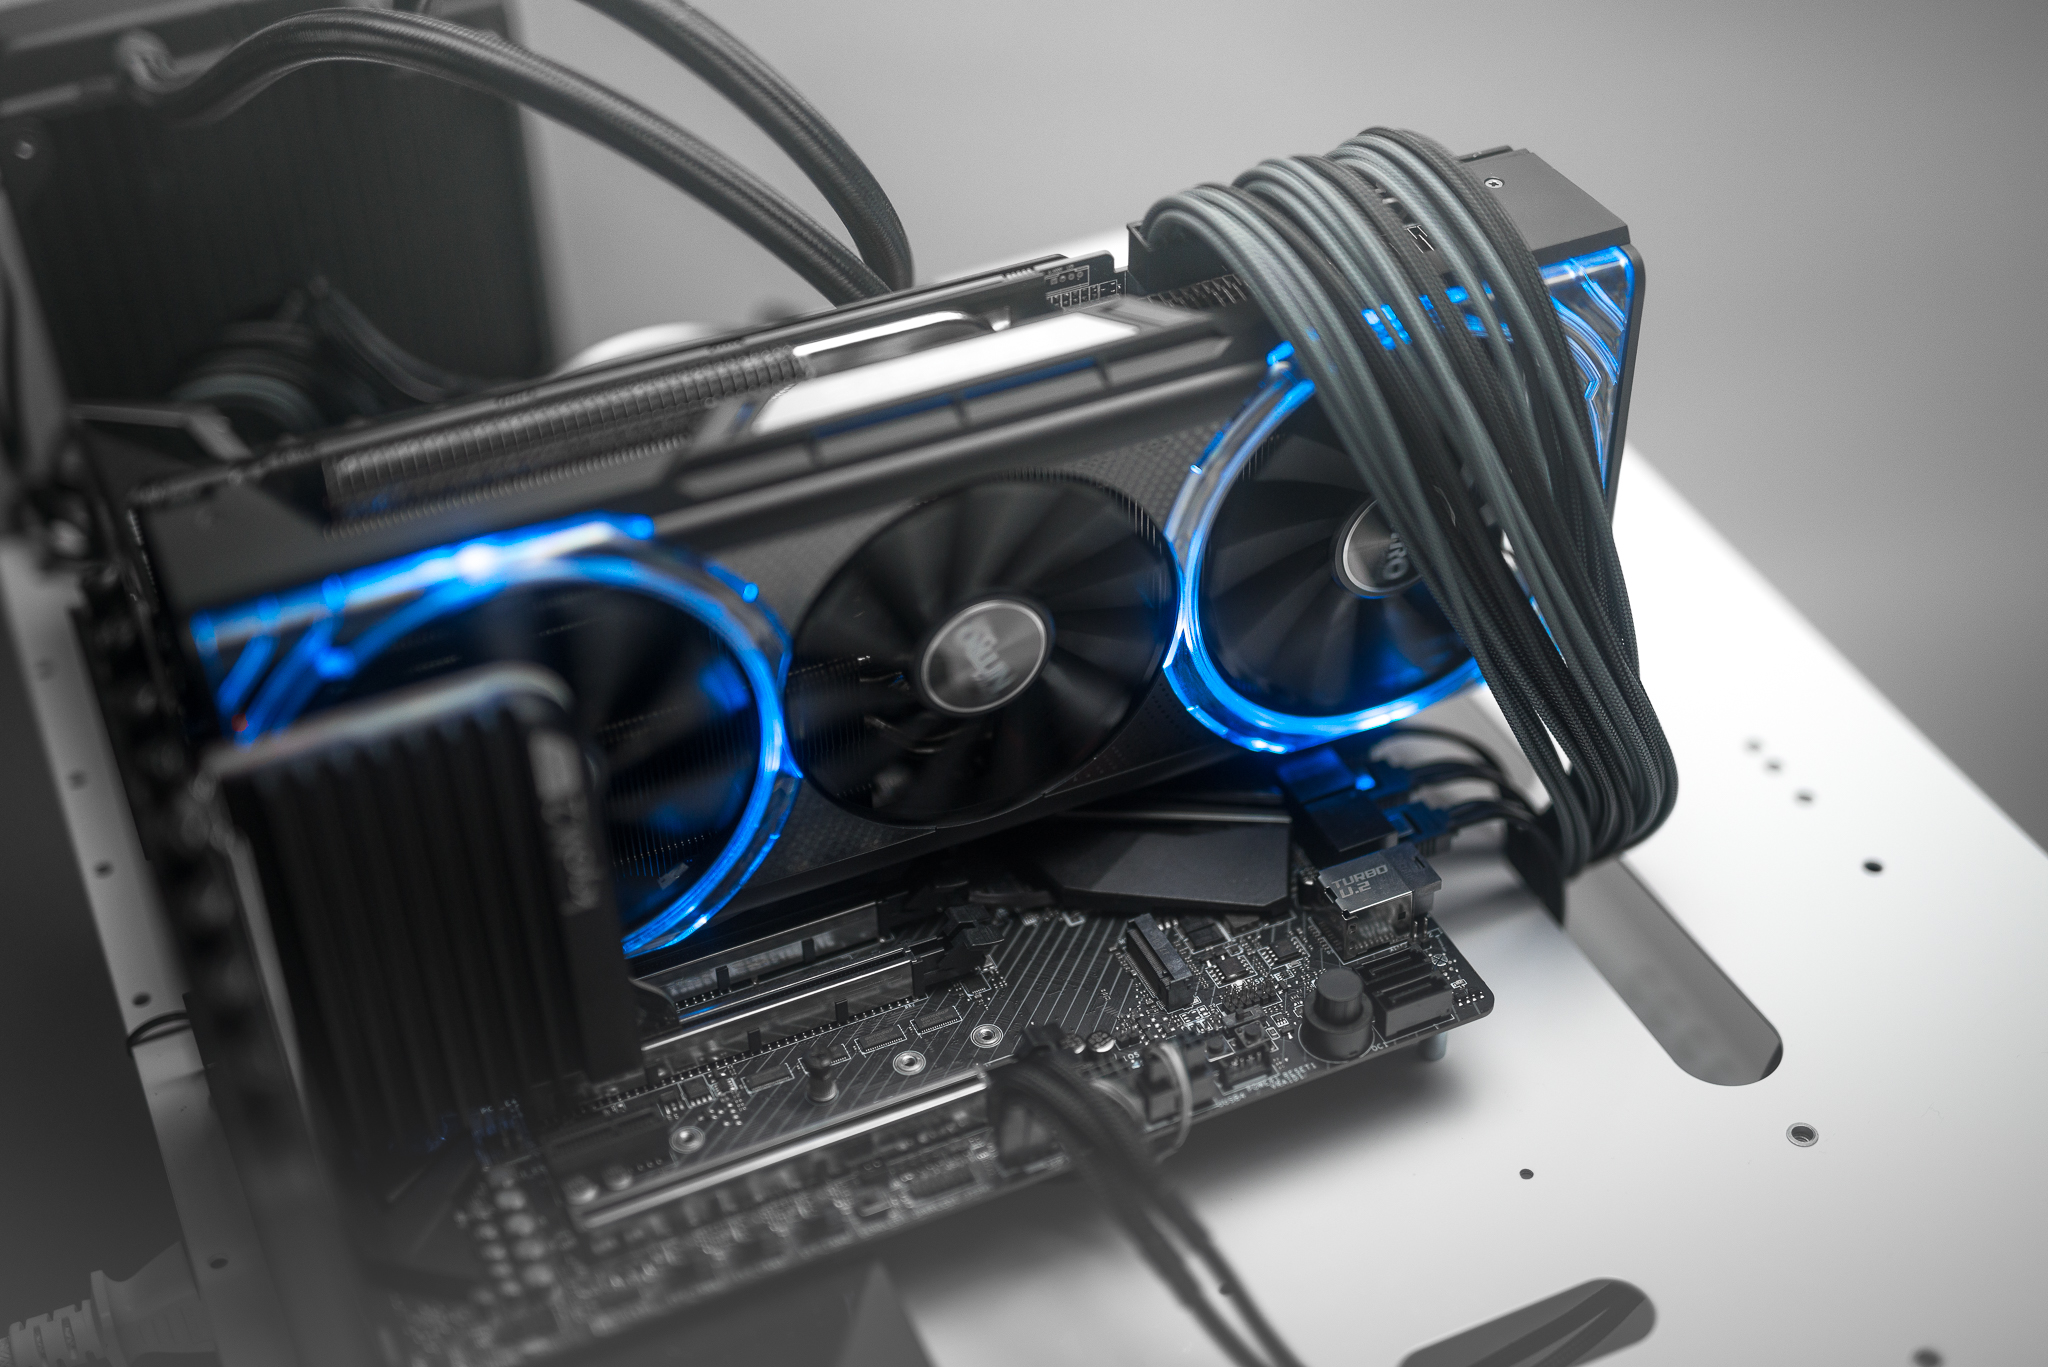 SAPPHIRE NITRO+ RX Vega 56 Limited Edition First Look [Video]